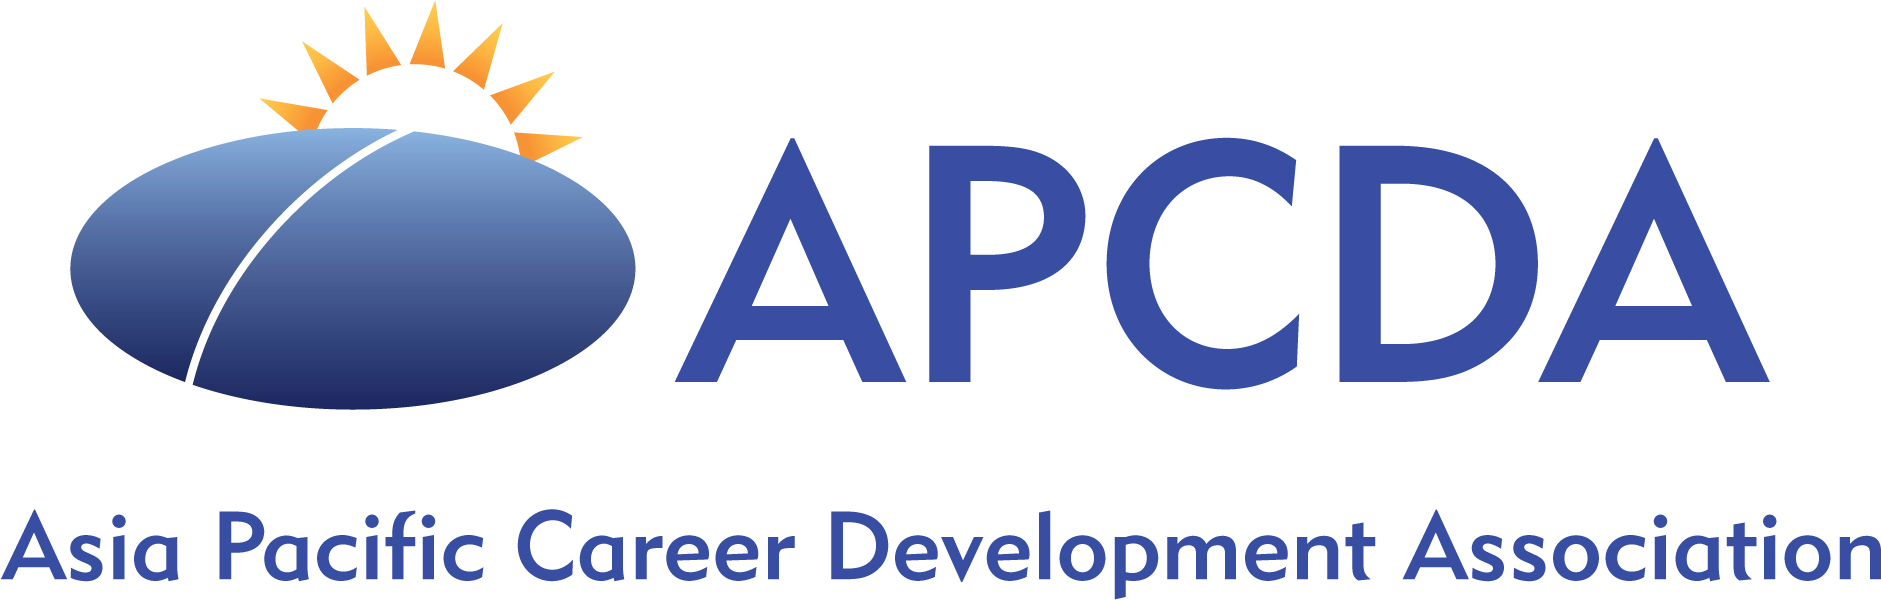 Asia Pacific Career Development Association Logo